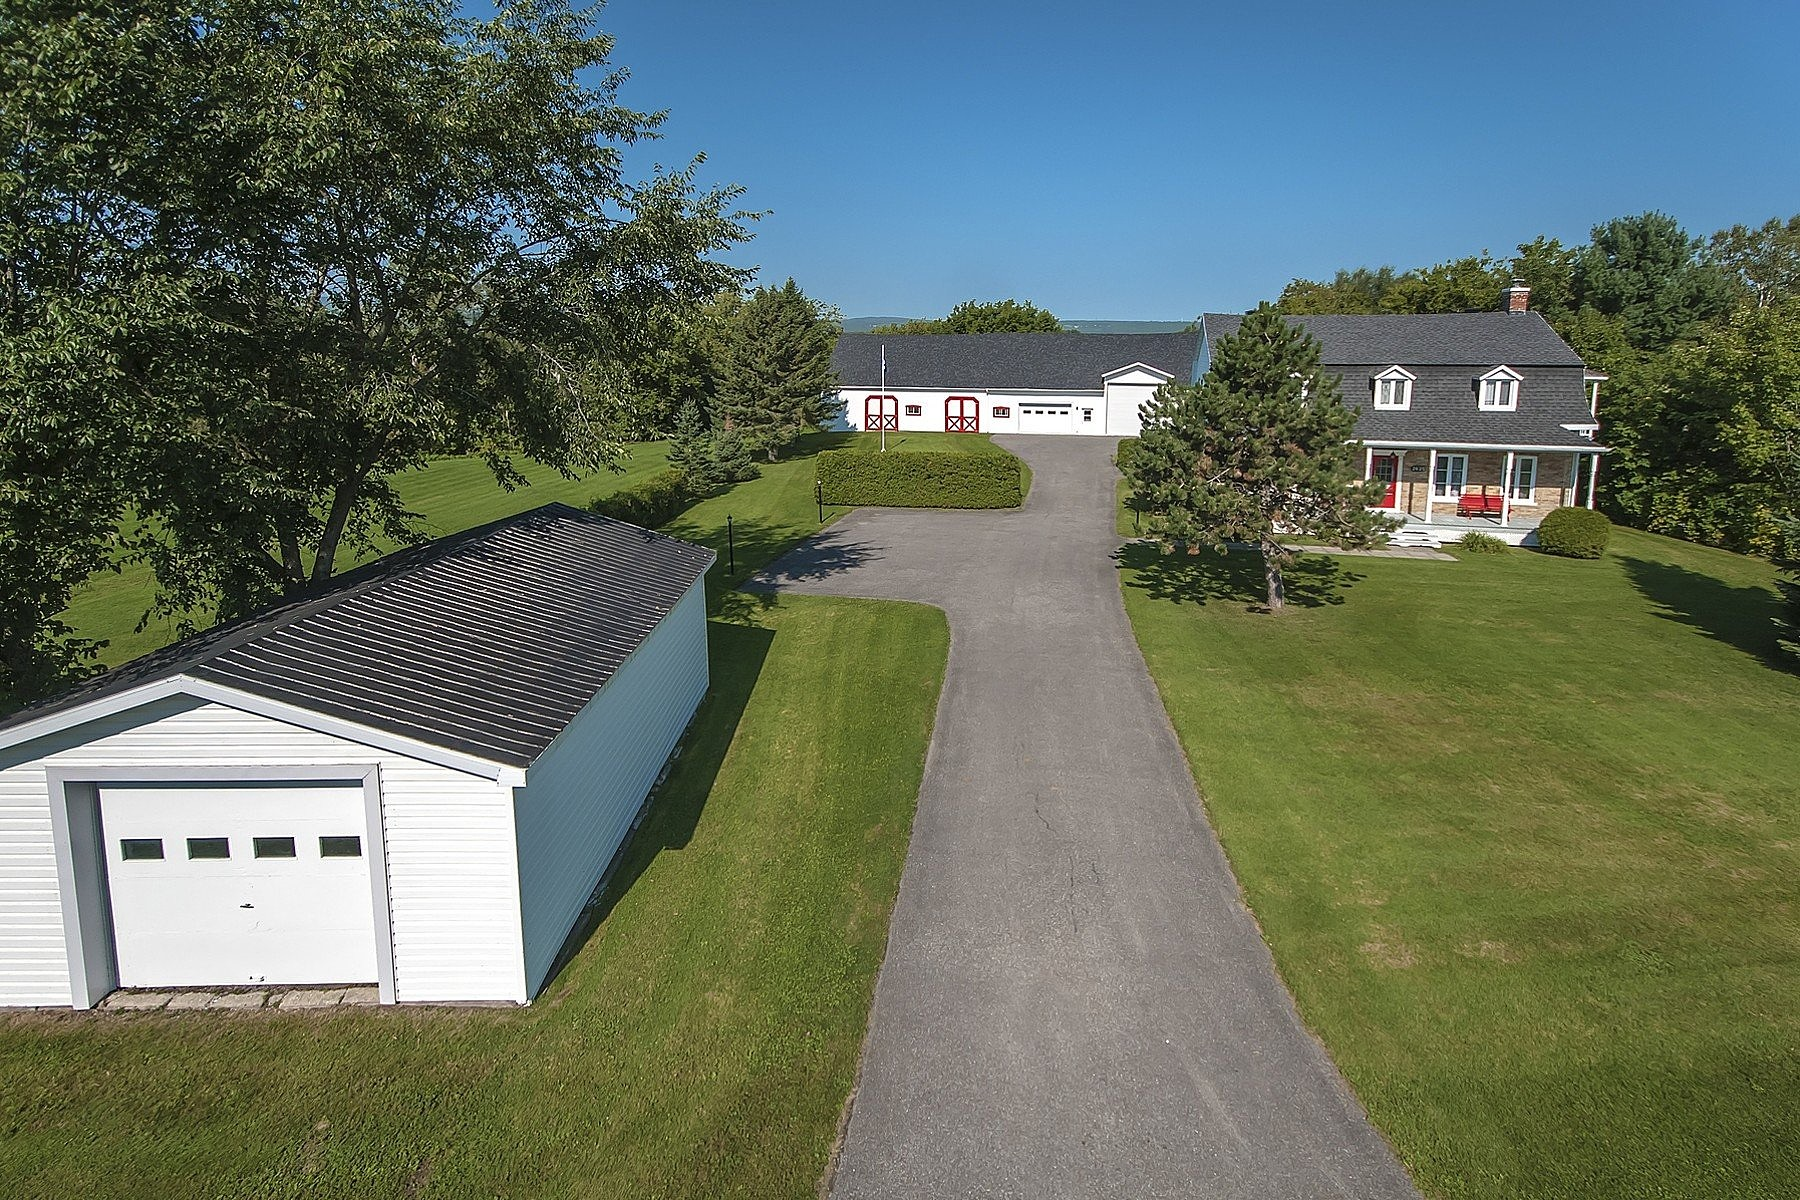 Single Family Homes for Sale at Sainte-Foy-Sillery, Capitale-Nationale 2625 Av. Notre-Dame Quebec, Quebec G2G0C3 Canada